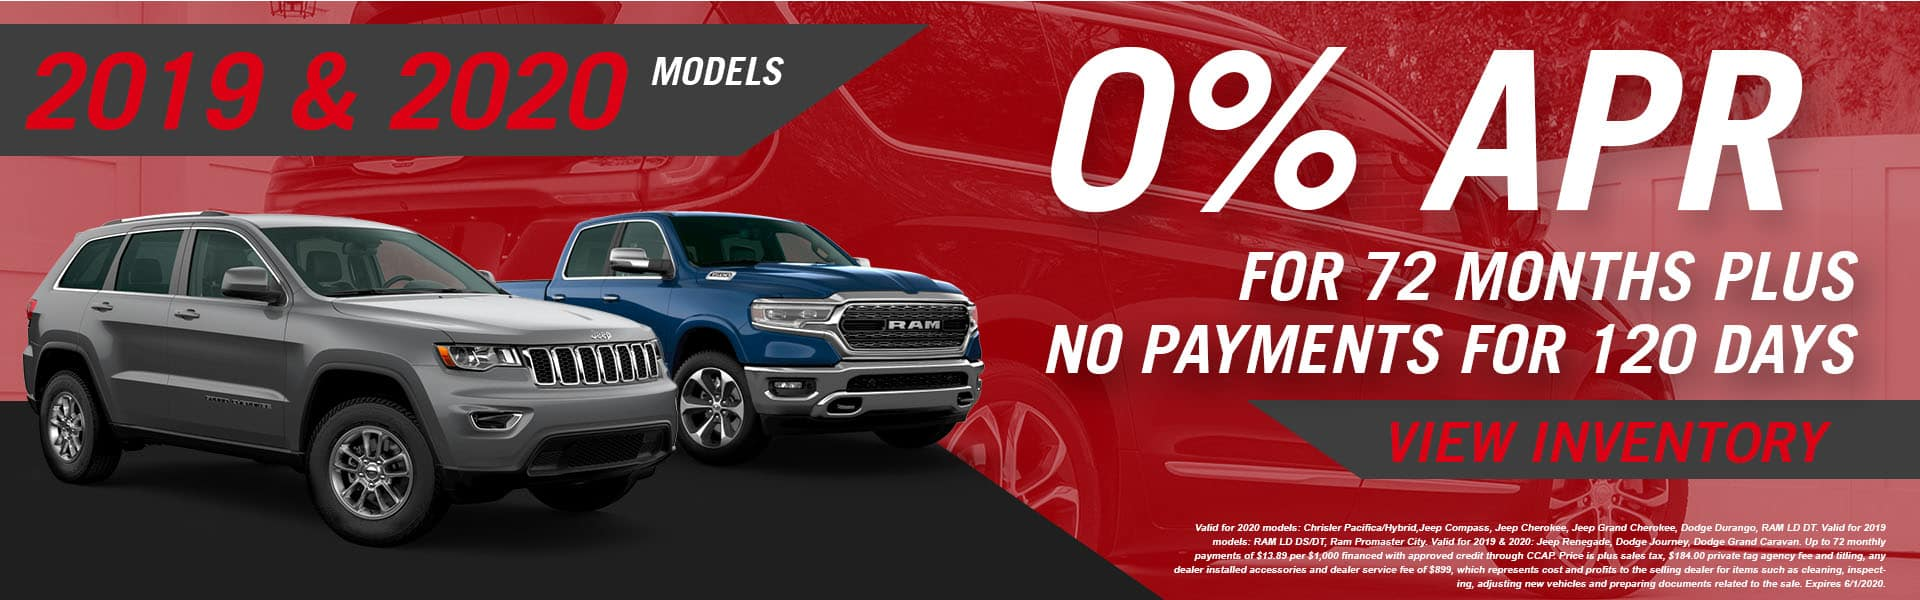 2019 & 2020 Models | 0% APR For 72 Months Plus No Payments for 120 Days